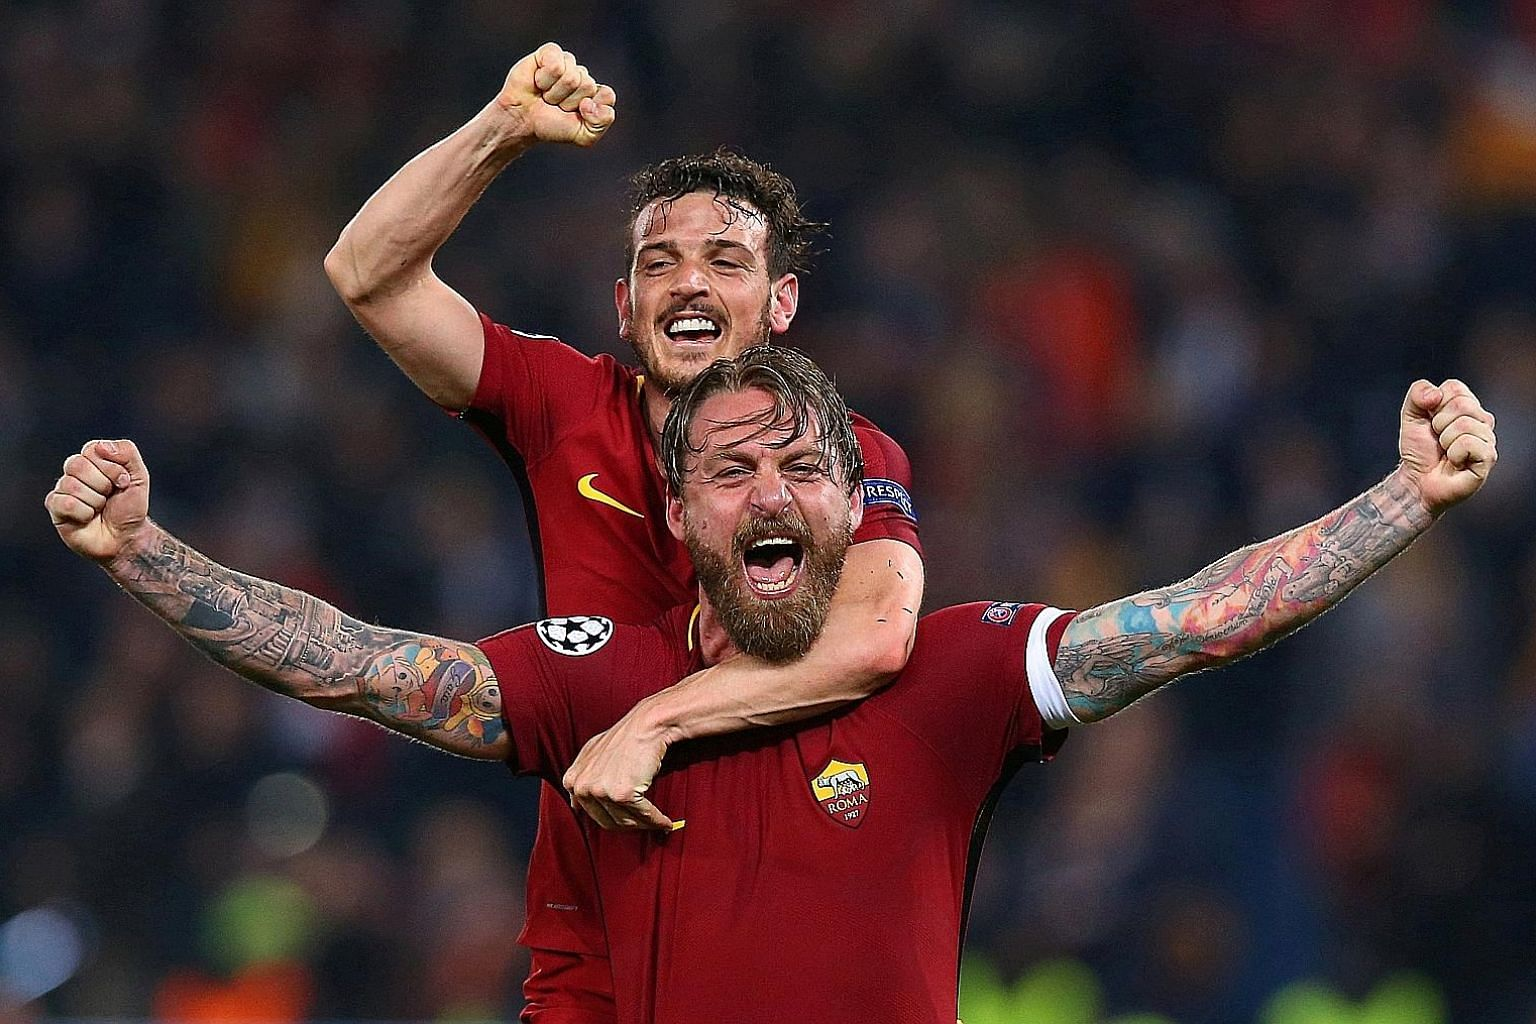 Roma captain Daniele de Rossi (front) and team-mate Alessandro Florenzi celebrating after stunning Barcelona 3-0 in the Champions League quarter-final second leg to advance 4-4 on the away-goal rule.